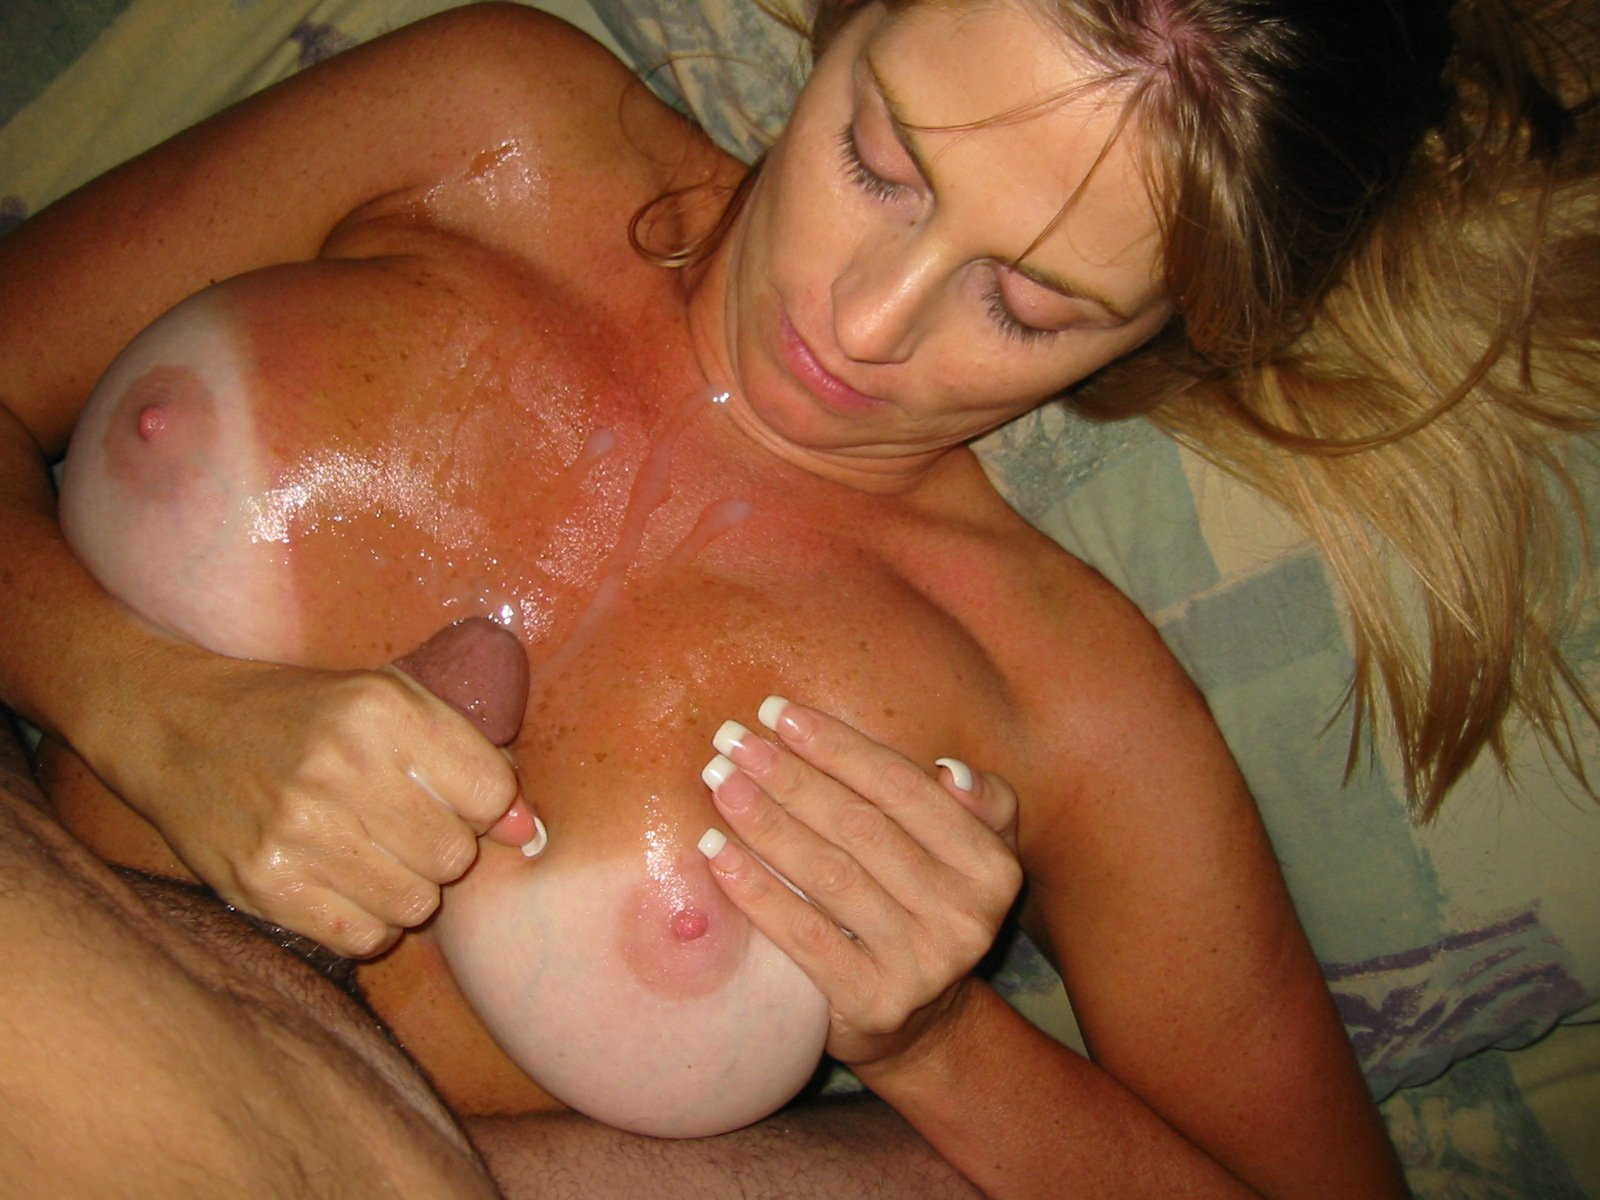 big tits mom nude sex art